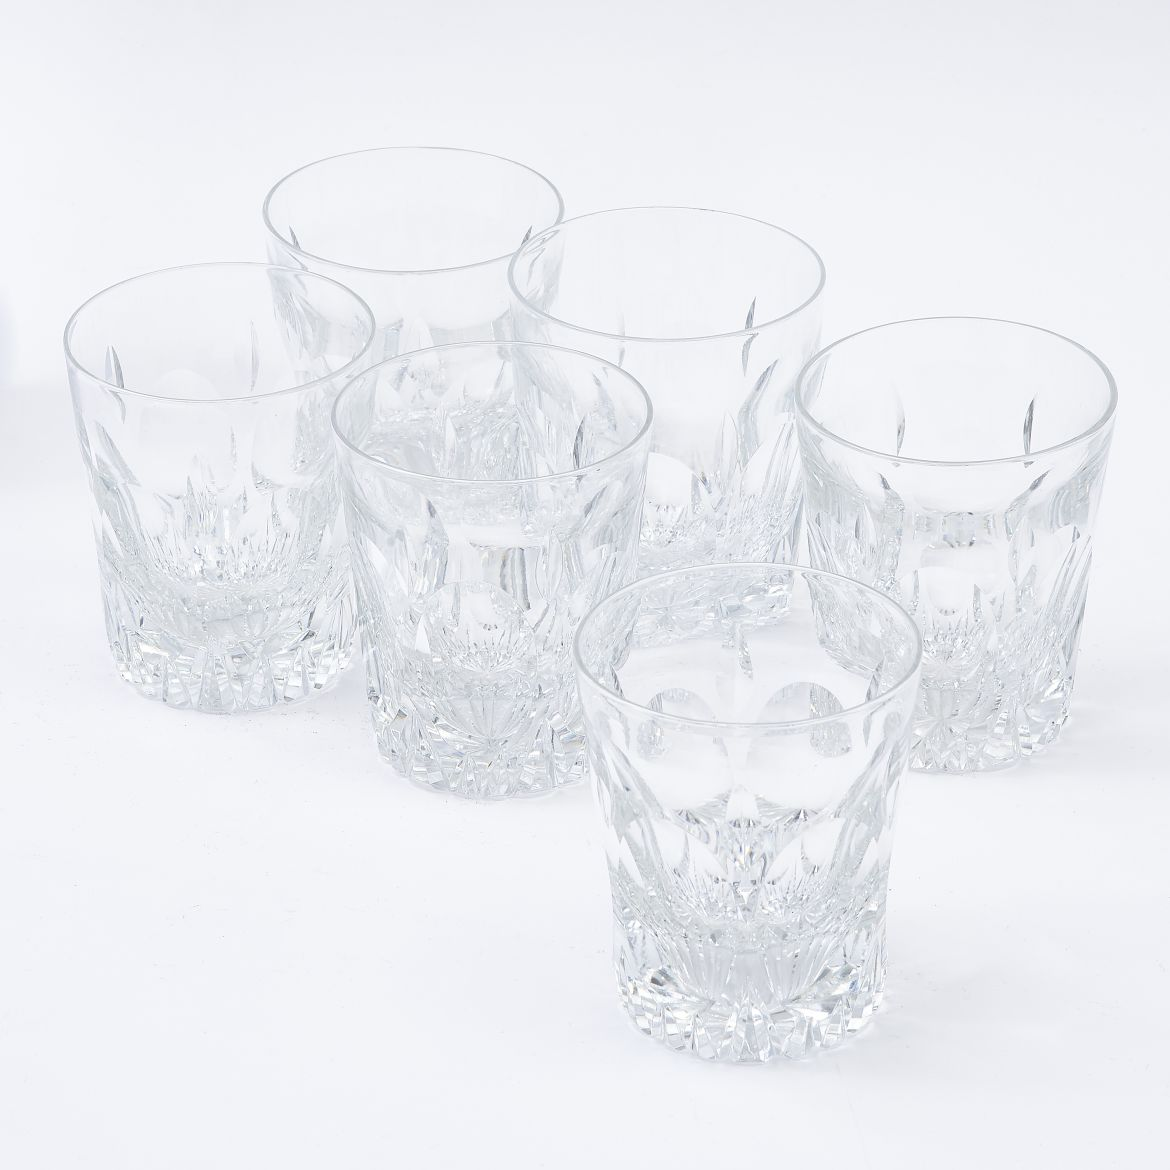 Six Large Whisky Tumblers